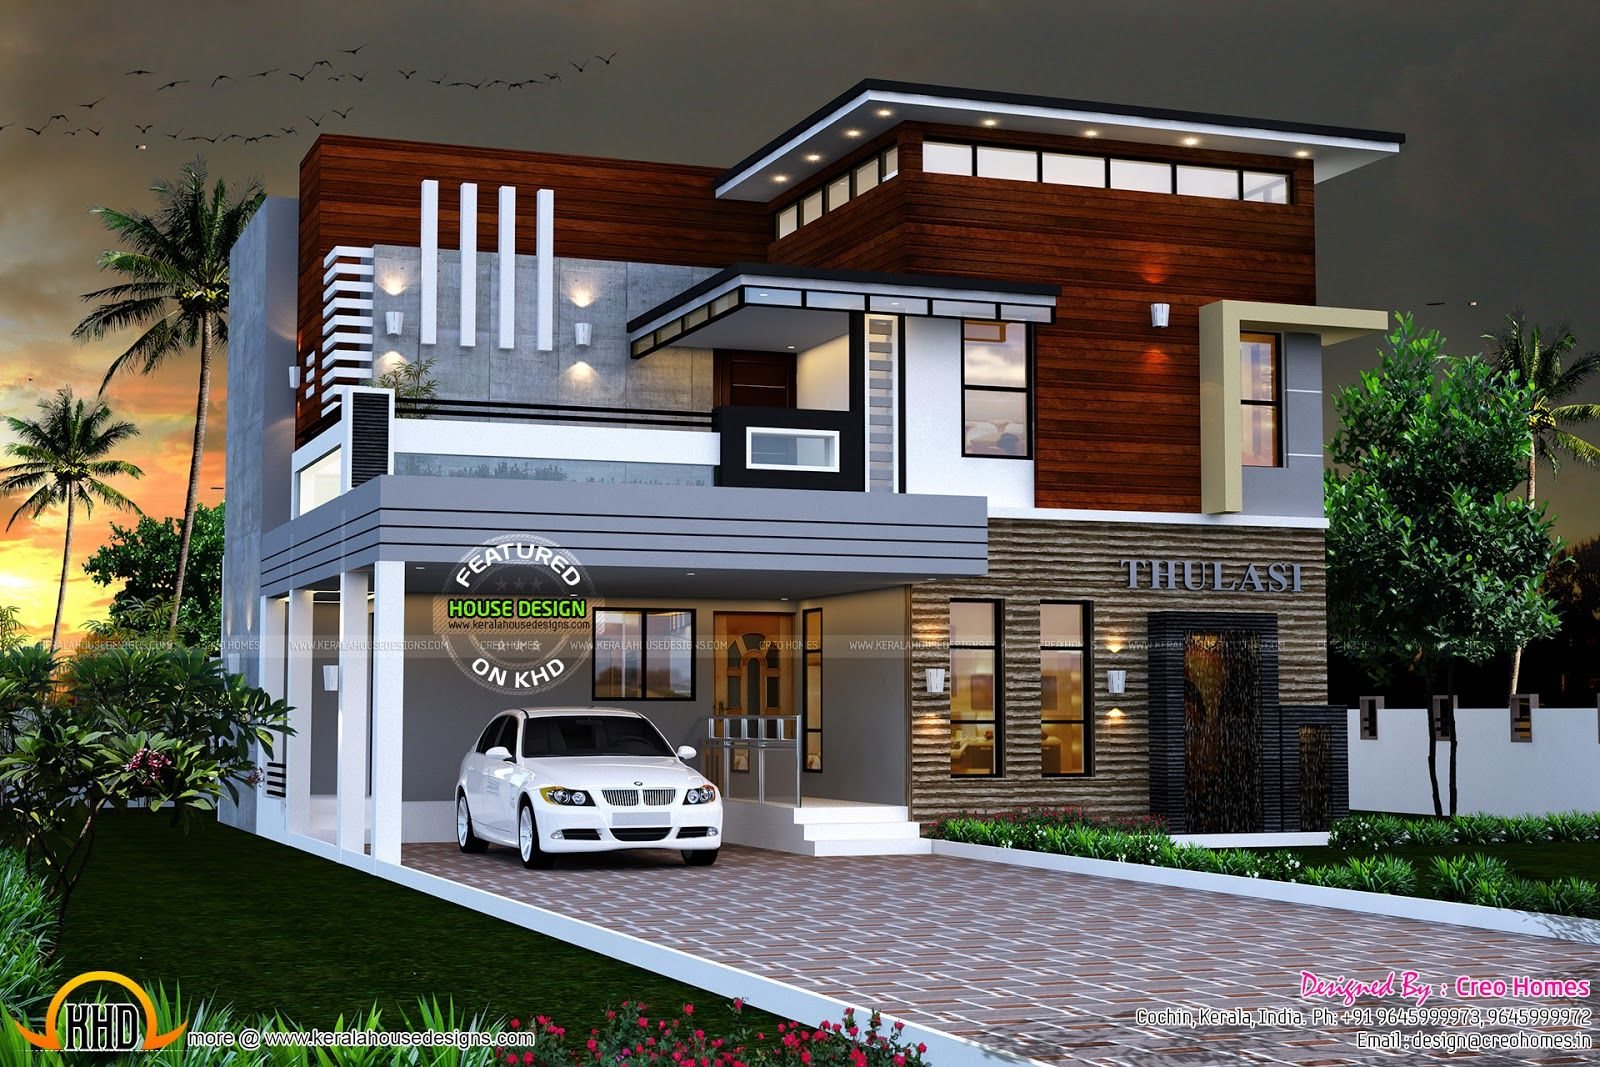 Eterior design modern small house architecture building for Kerala house plans with photos free